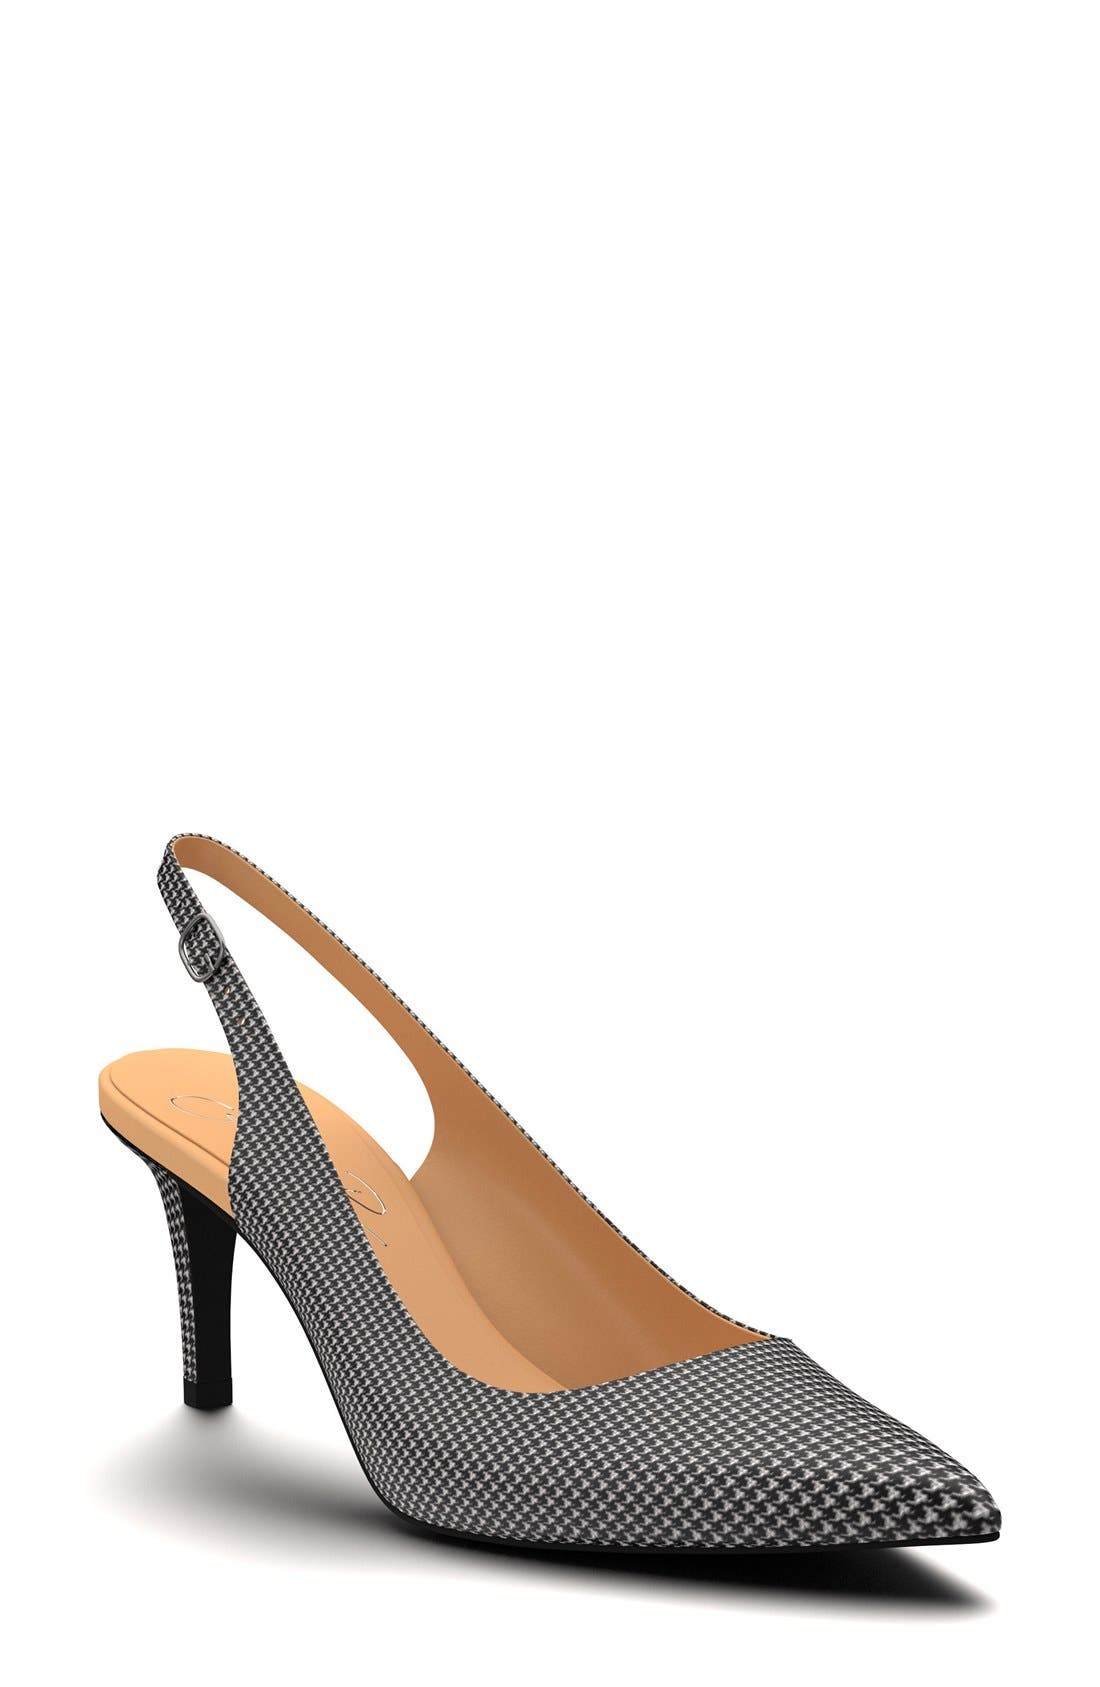 SHOES OF PREY Slingback Pump